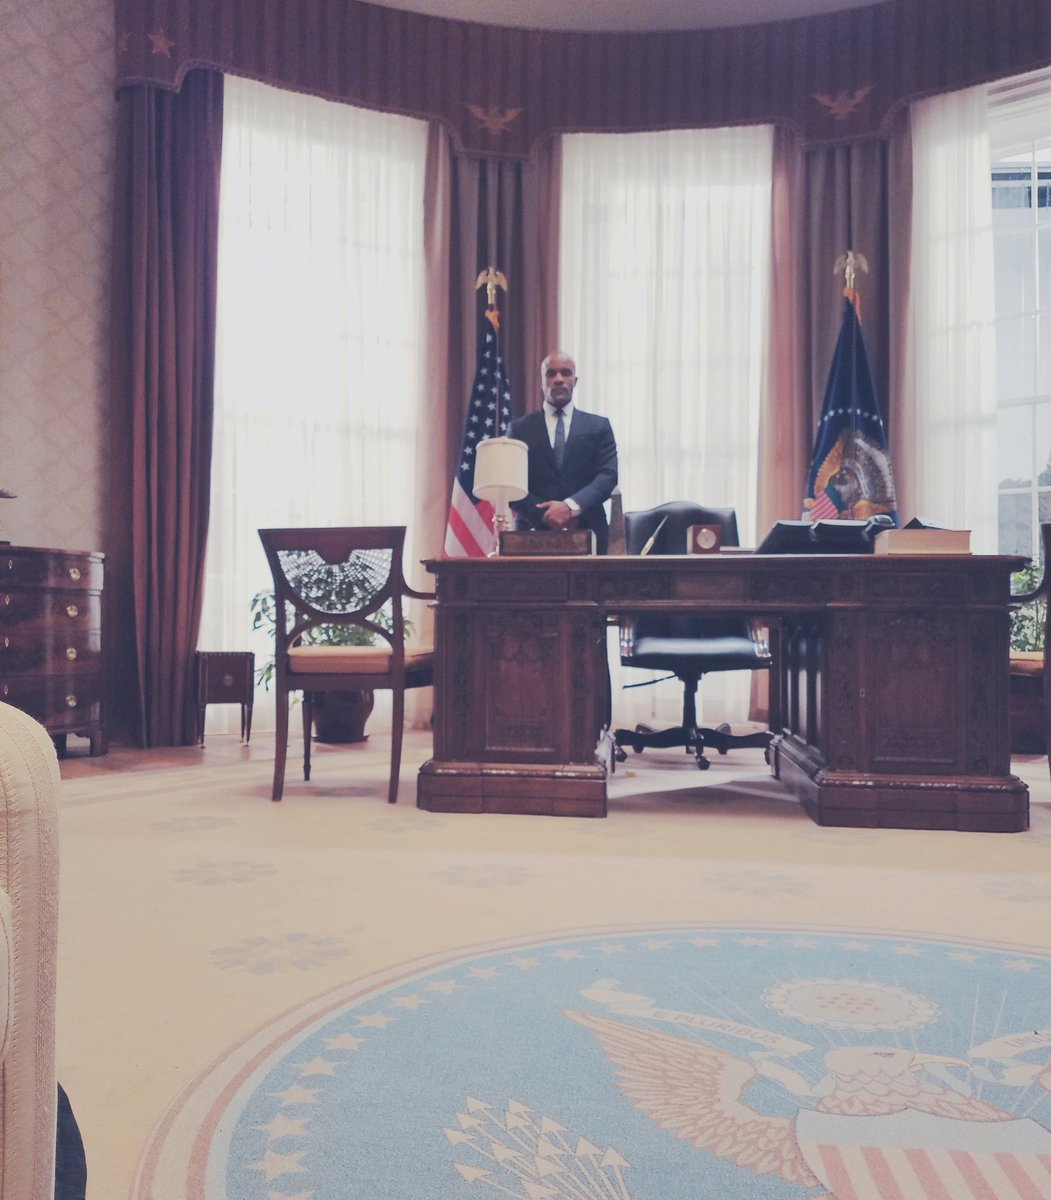 East Coast, RT if you'll be joining us in the Oval Office this evening #DesignatedSurvivor